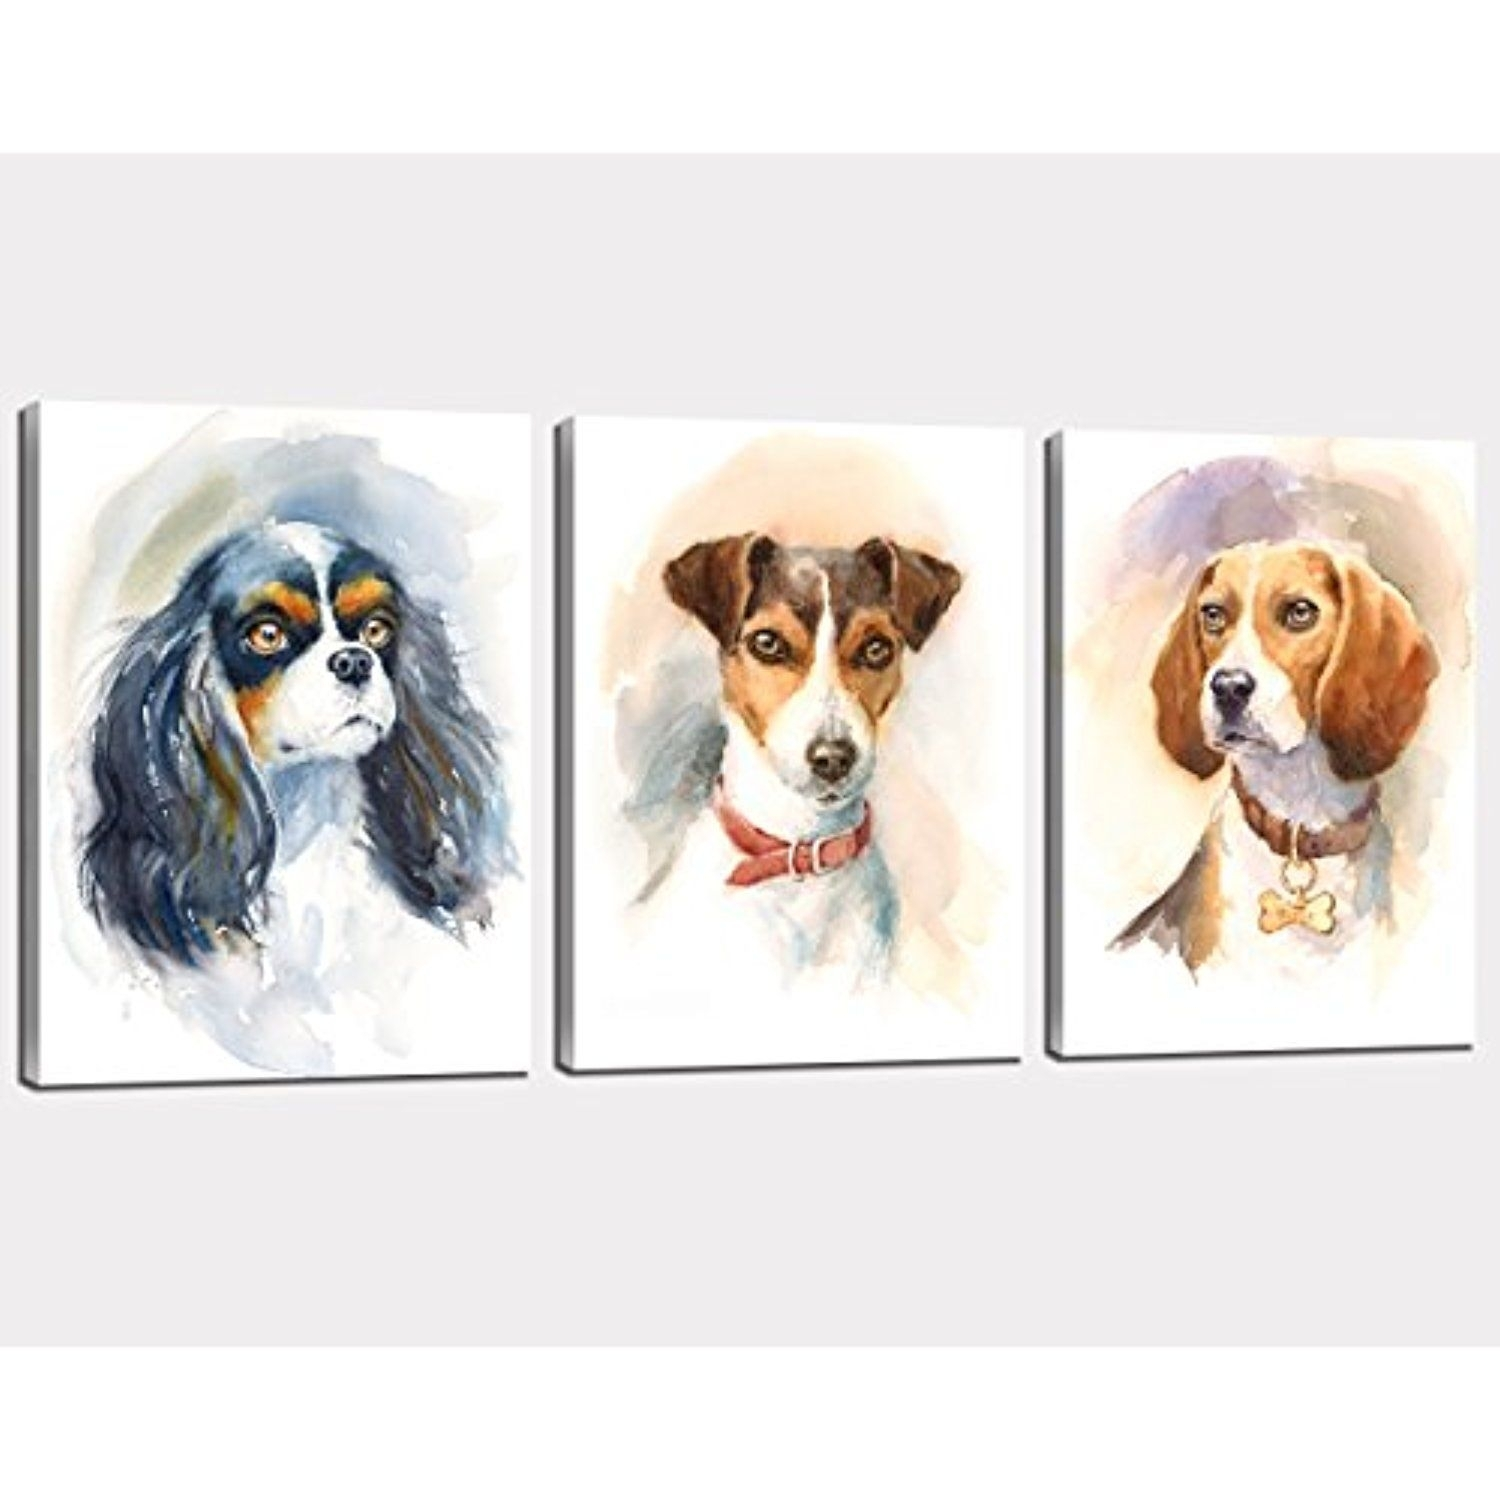 Nan Wind 3Pcs Modern Giclee Dogs Canvas Prints Cute Animals Wall Pertaining To Recent Dogs Canvas Wall Art (View 15 of 15)